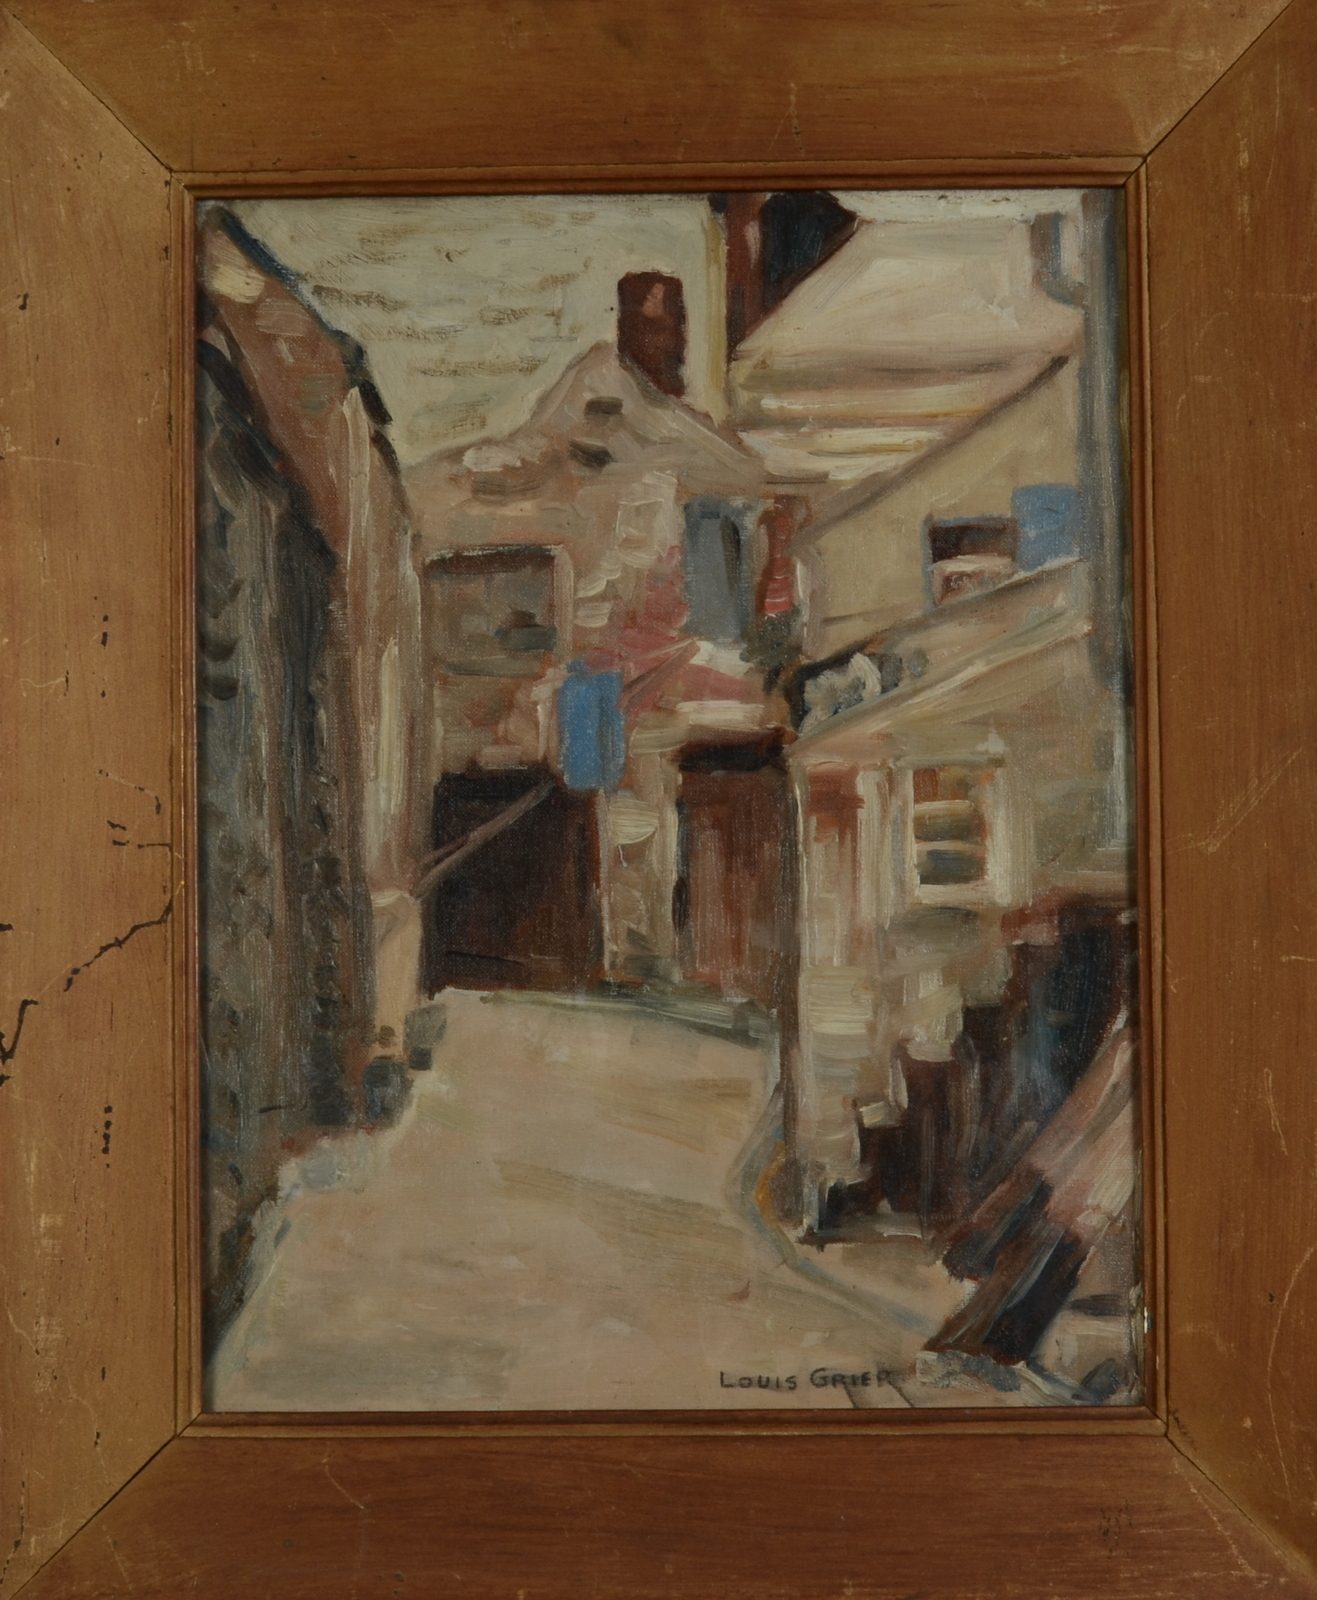 Lot 35 - LOUIS MONRO GRIER A Street View Oil on canvas Signed 46 x 36 cm